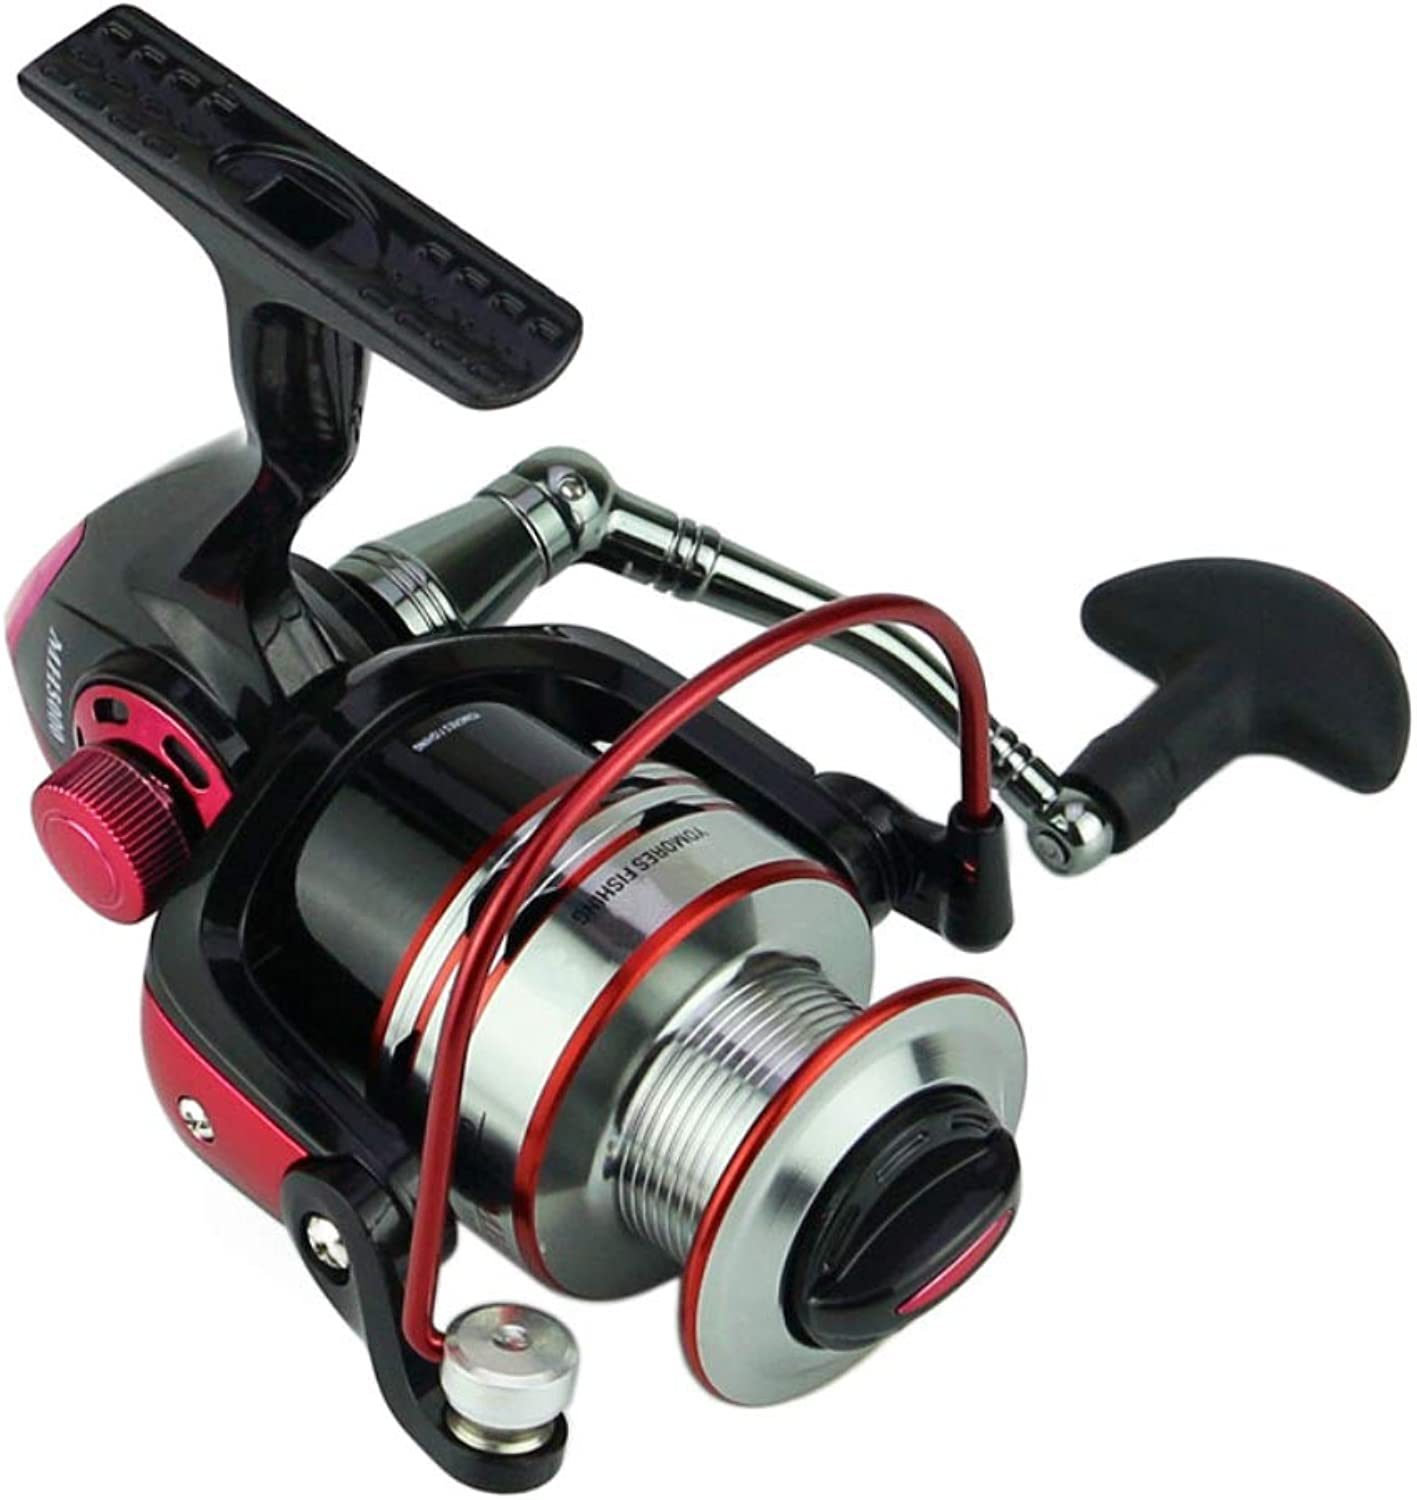 Fishing Spinning Reel 10+1BB Saltwater HighProfile Fishing Reels Pesca Surfing Long Casting Wheel for Saltwater or Freshwater,4000model